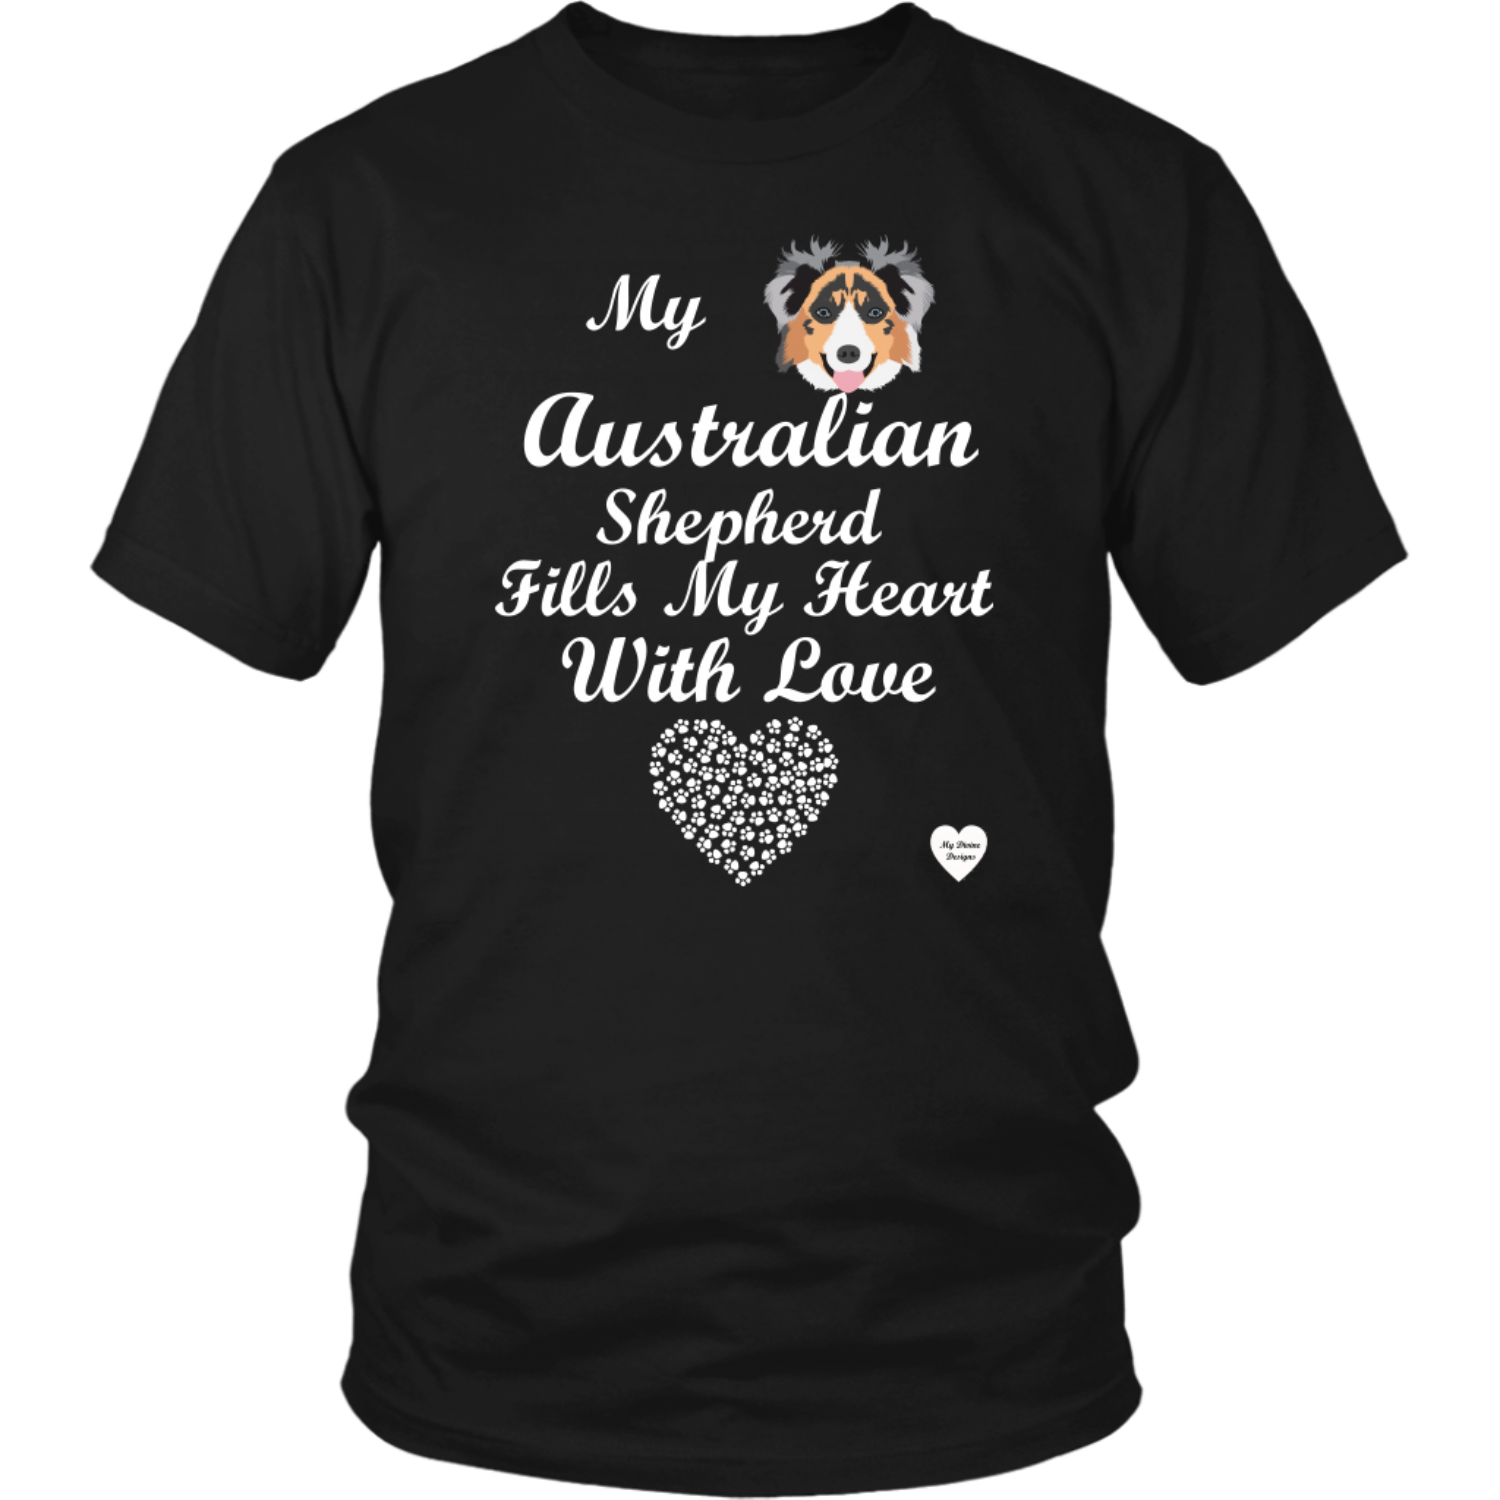 australian shepherd fills my heart t-shirt black